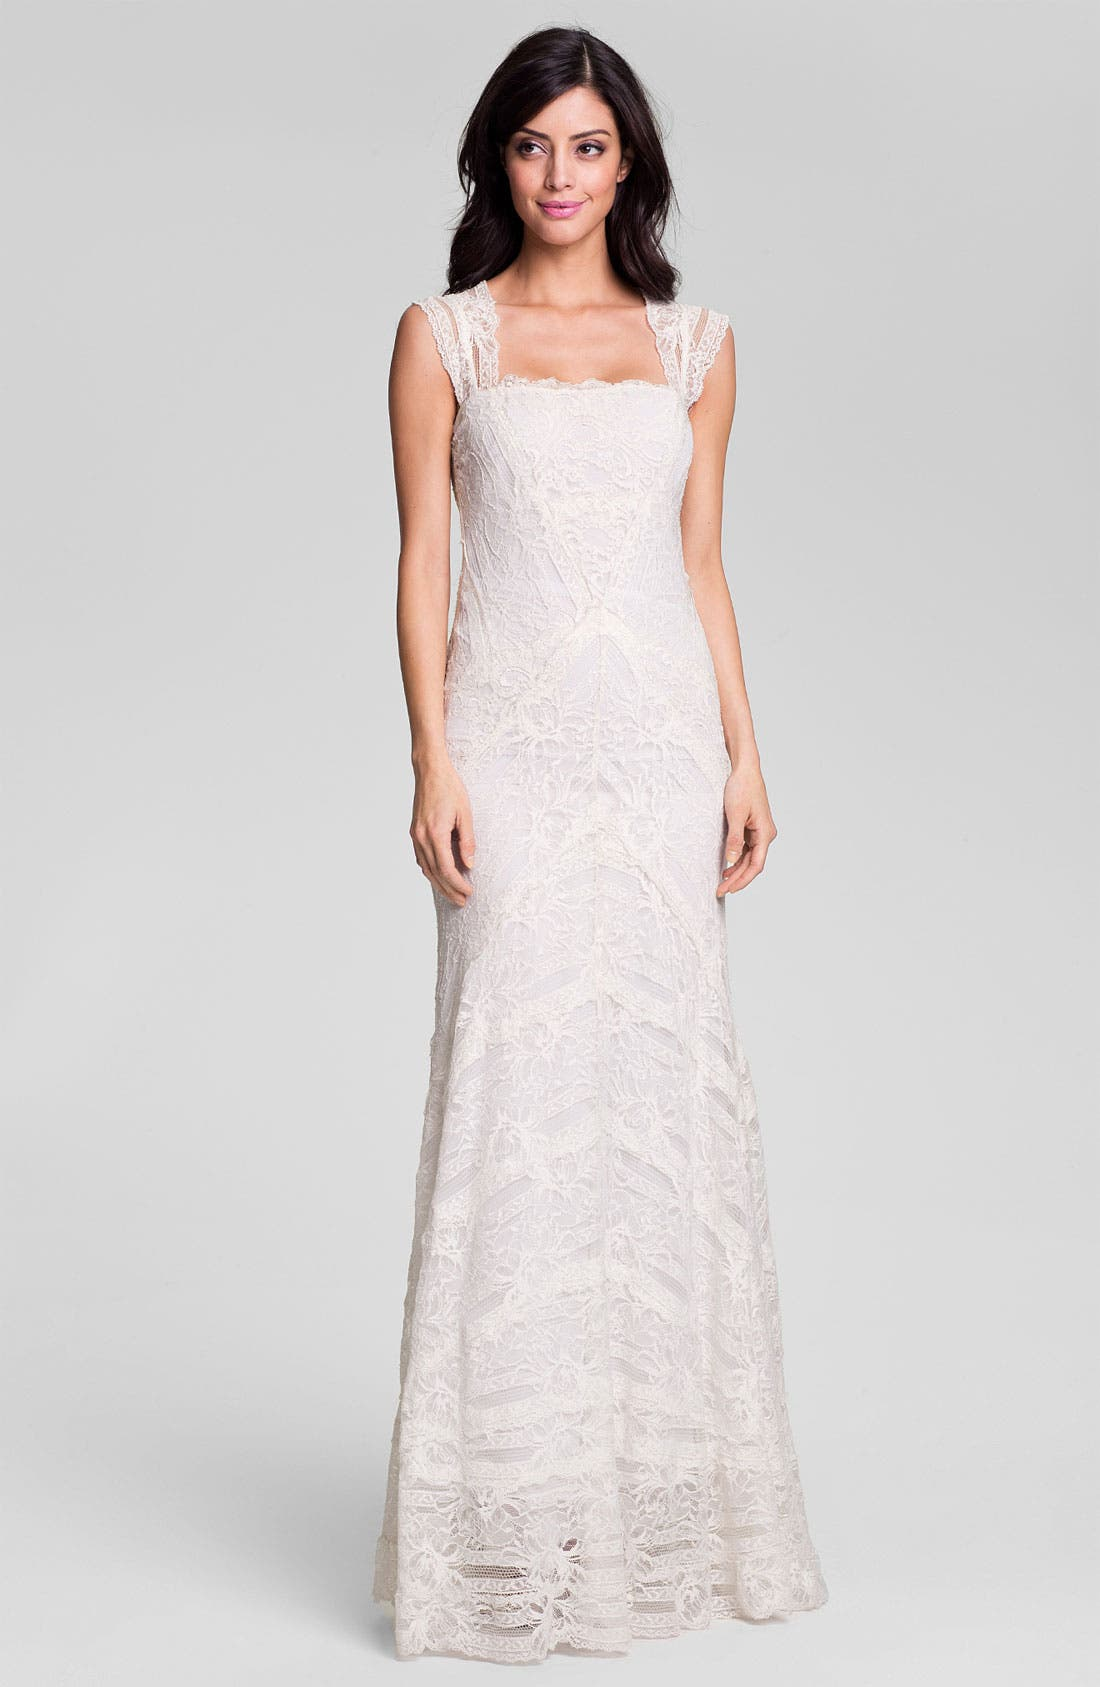 Main Image - Nicole Miller 'Aneka' Cap Sleeve Lace Gown